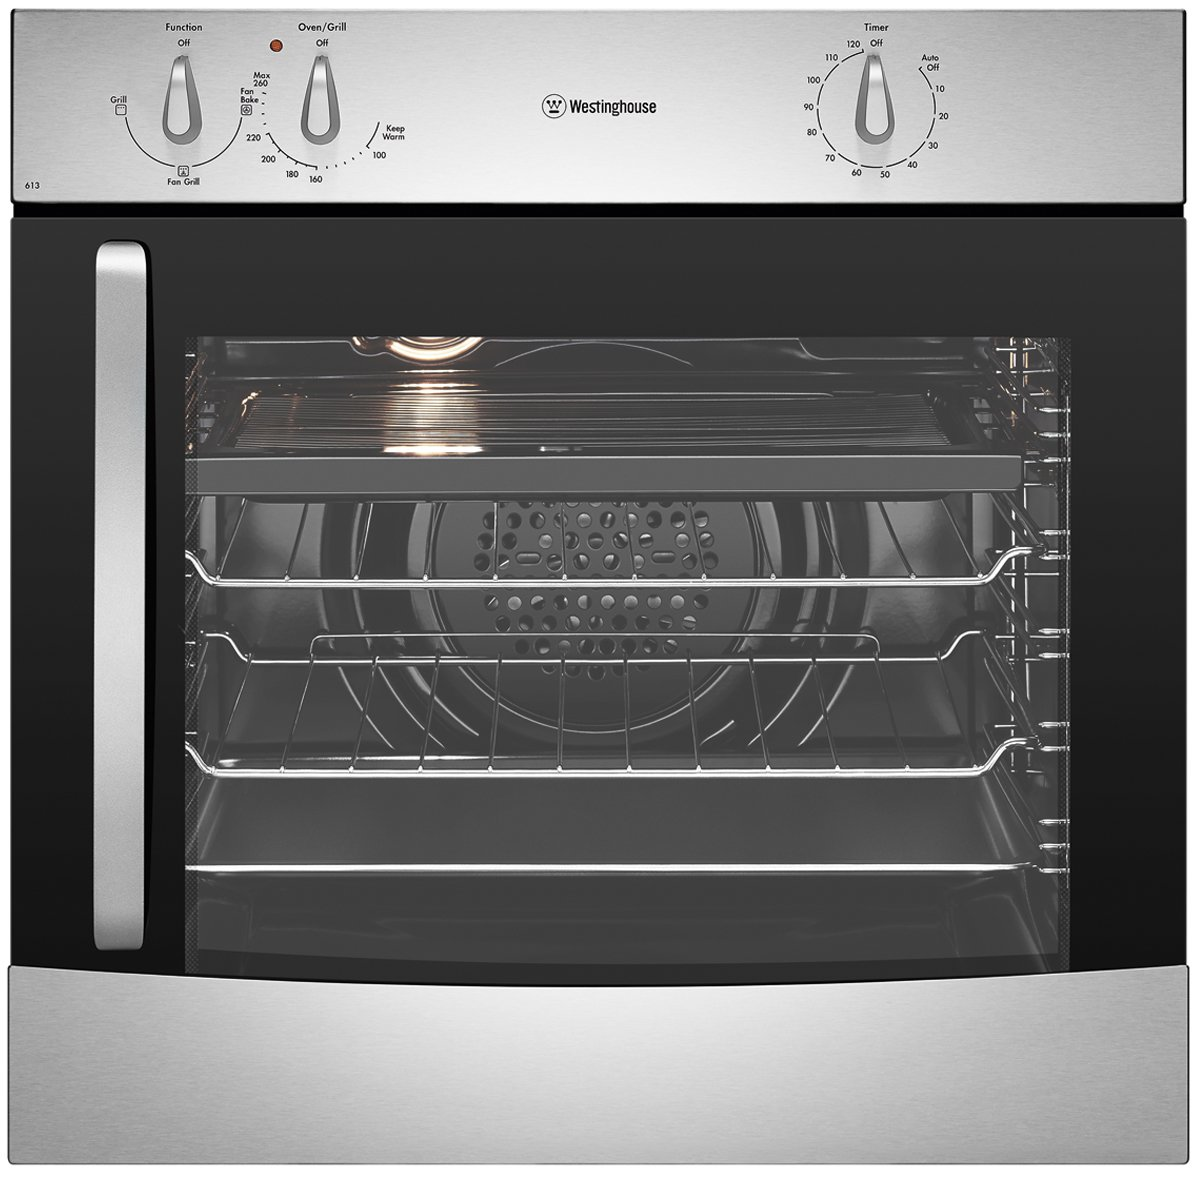 Westinghouse Wall Ovens Wiring Diagram Electrical Diagrams Gallery Electric Stove Wves613s L 60cm Built In Oven Appliances Online Exhaust Hood